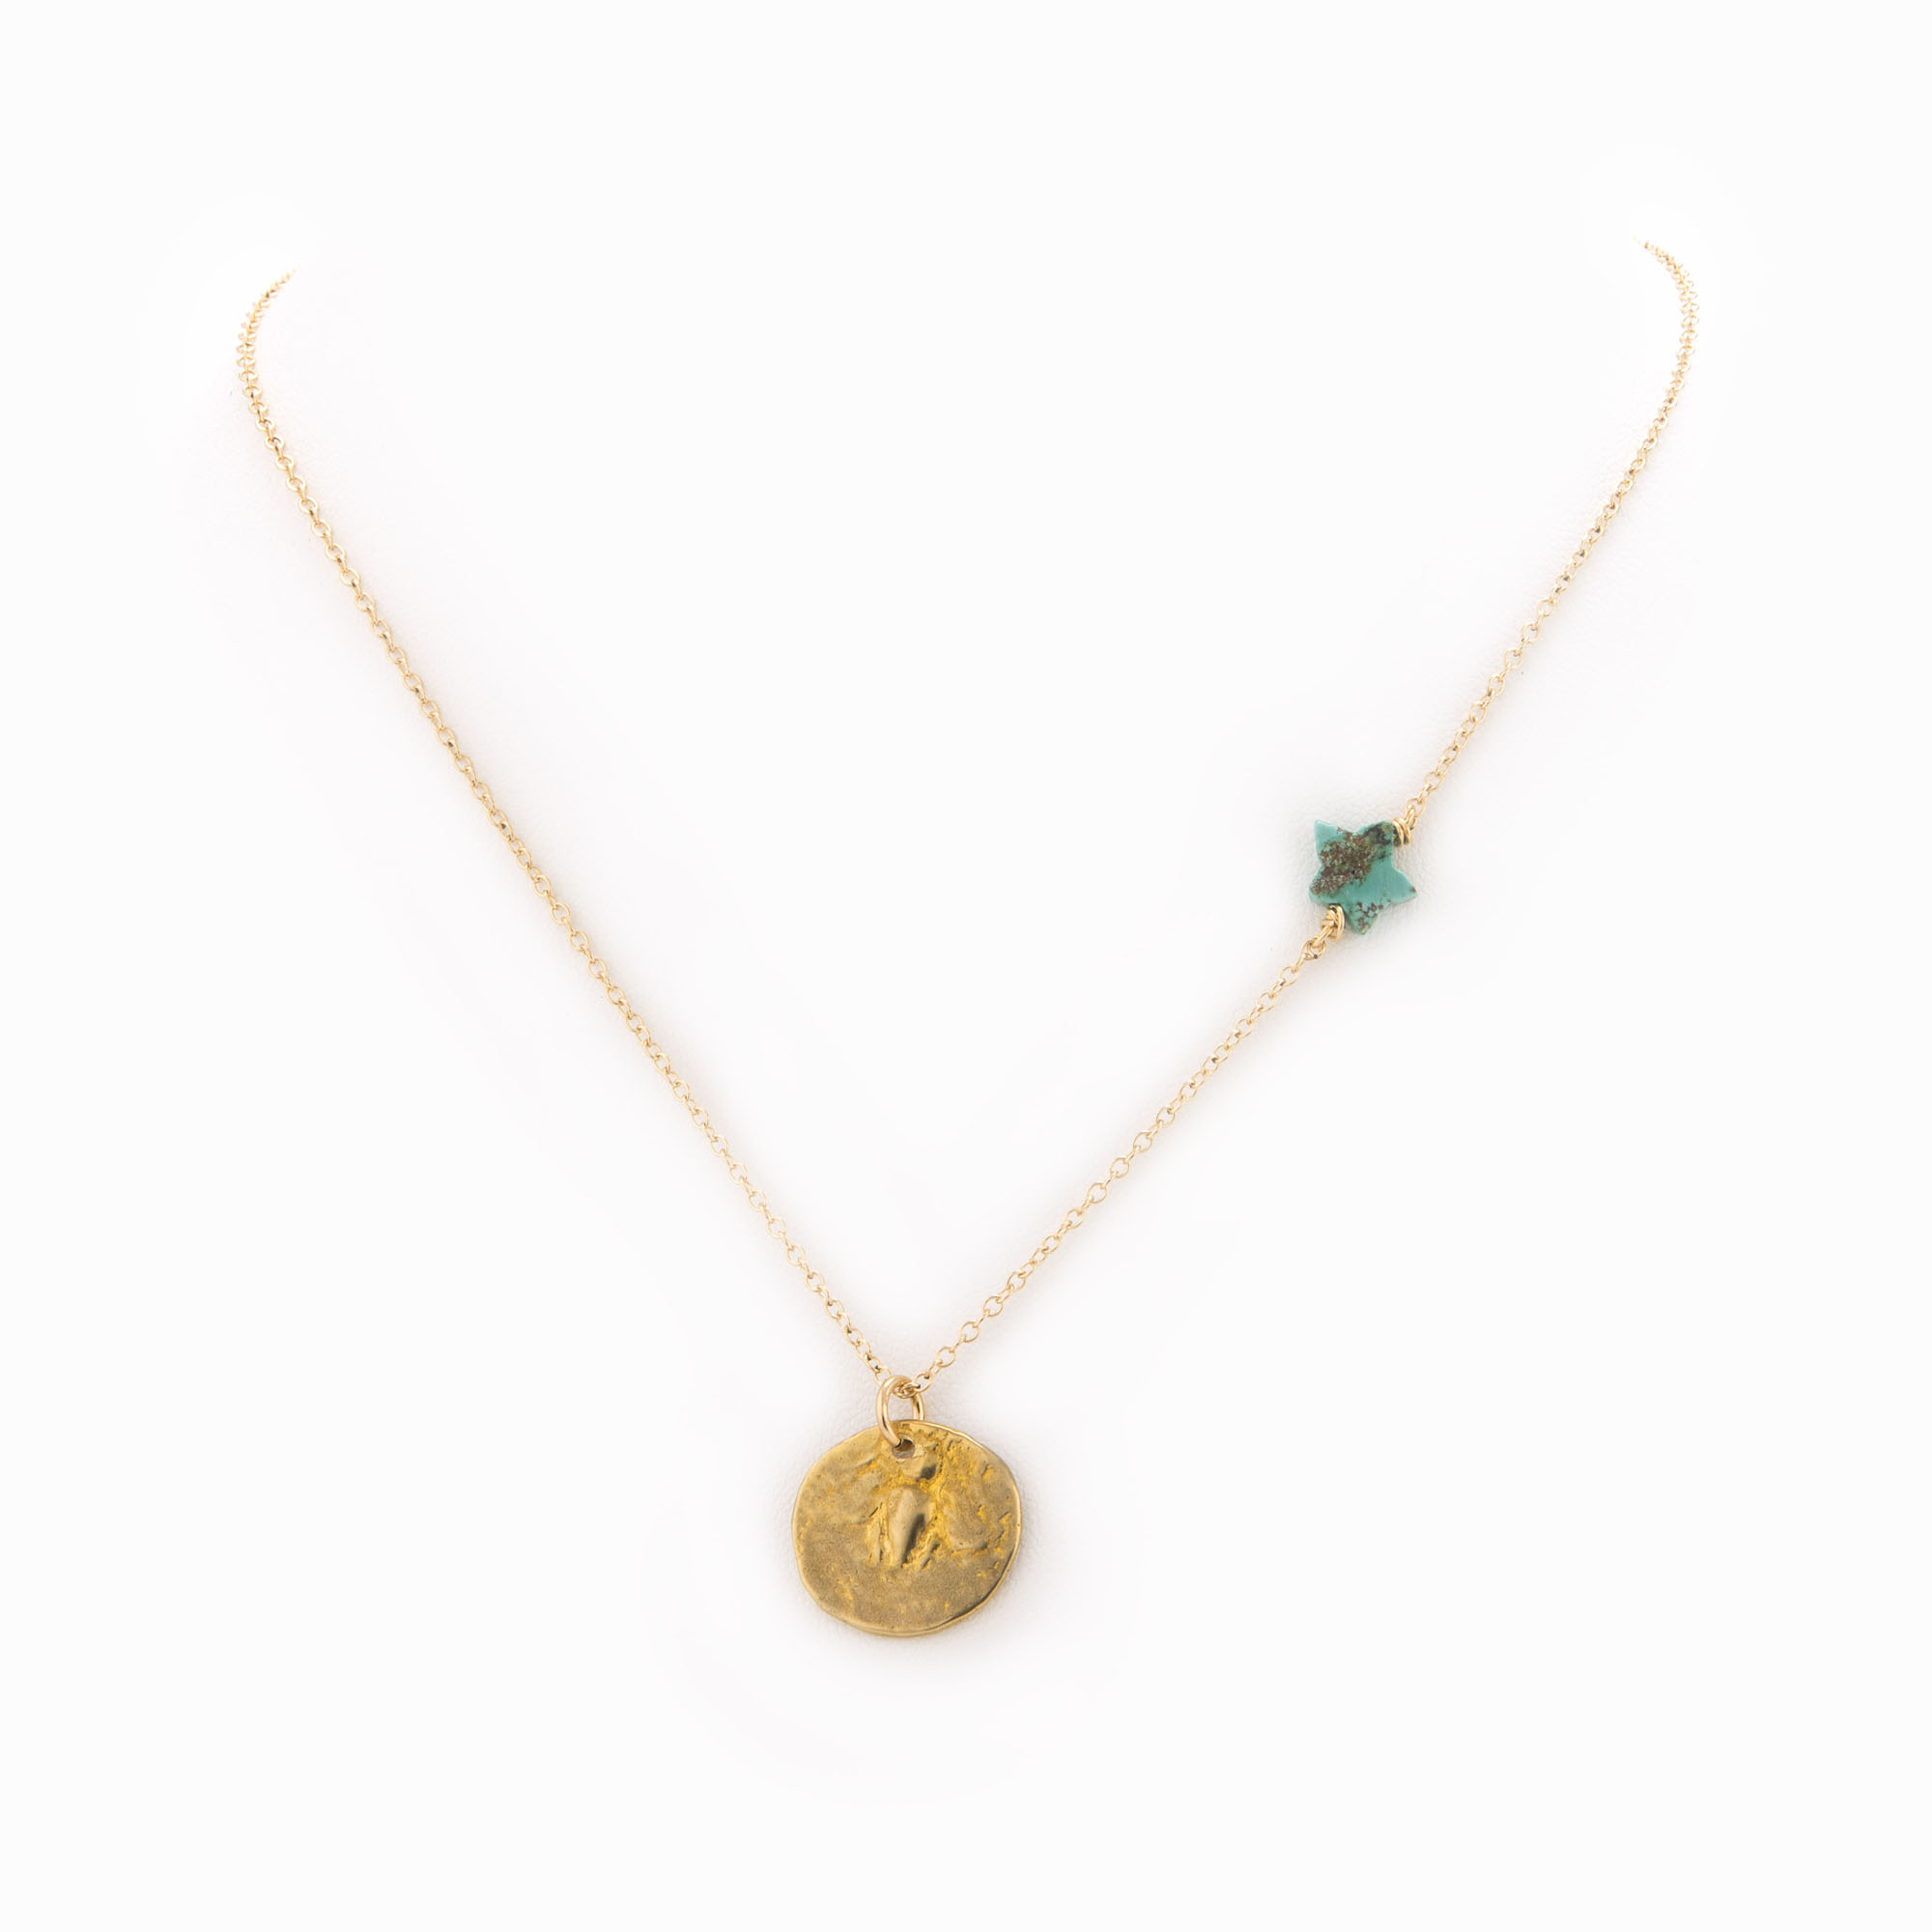 A 14k gold-filled chain necklace with brass coin and turquoise star charm.